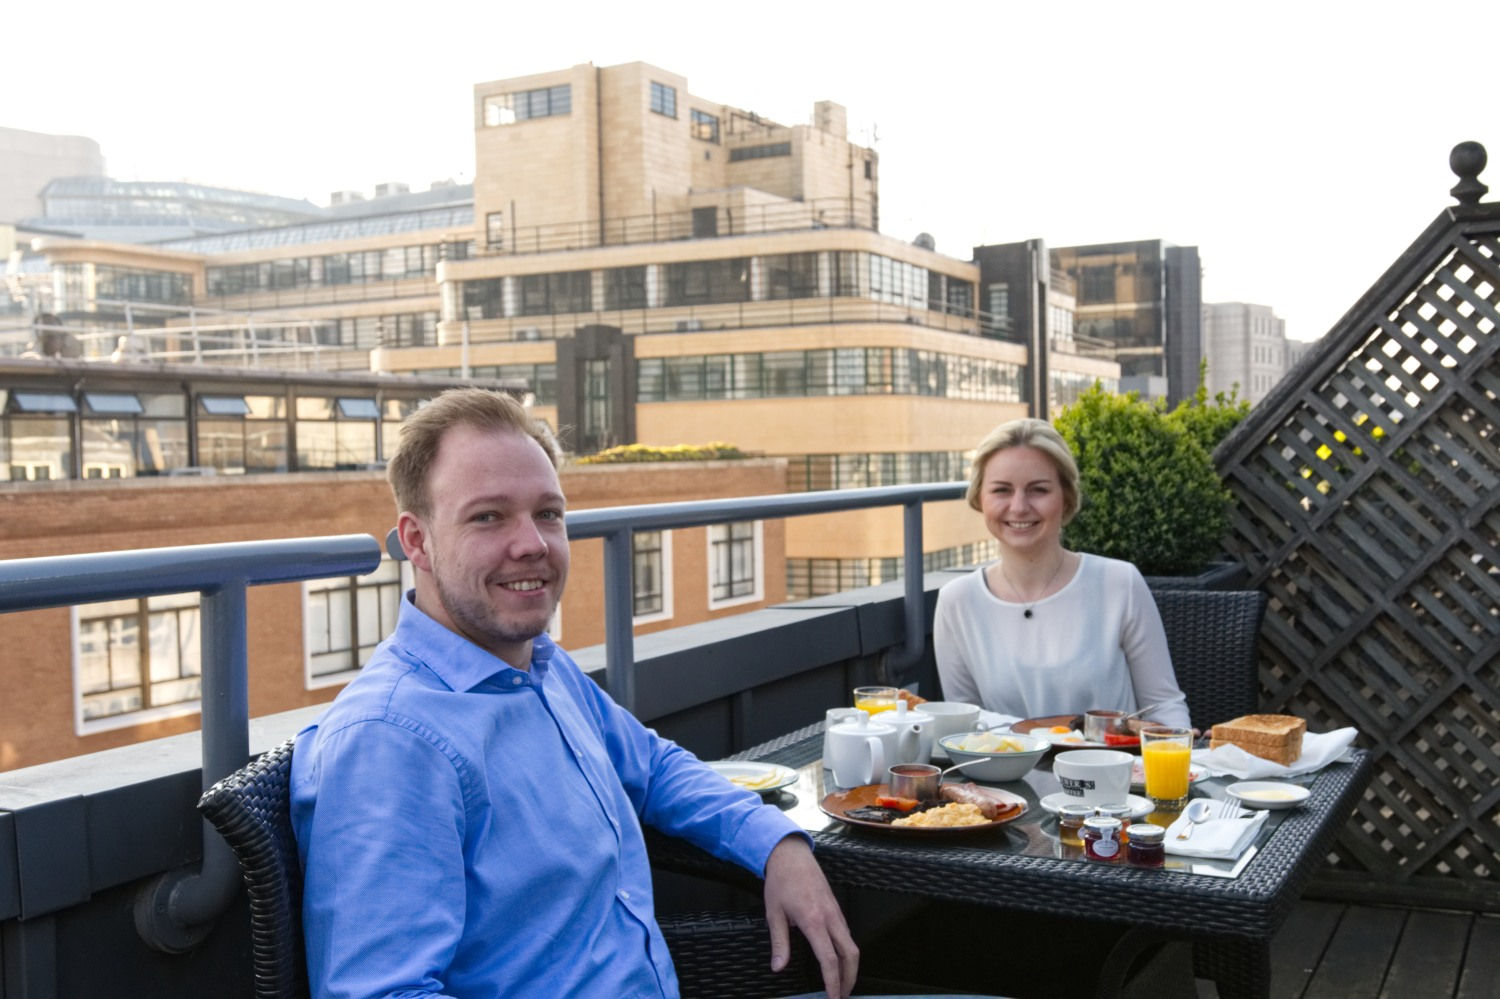 Breakfast on our roof terrace of the Chamberlain Hotel